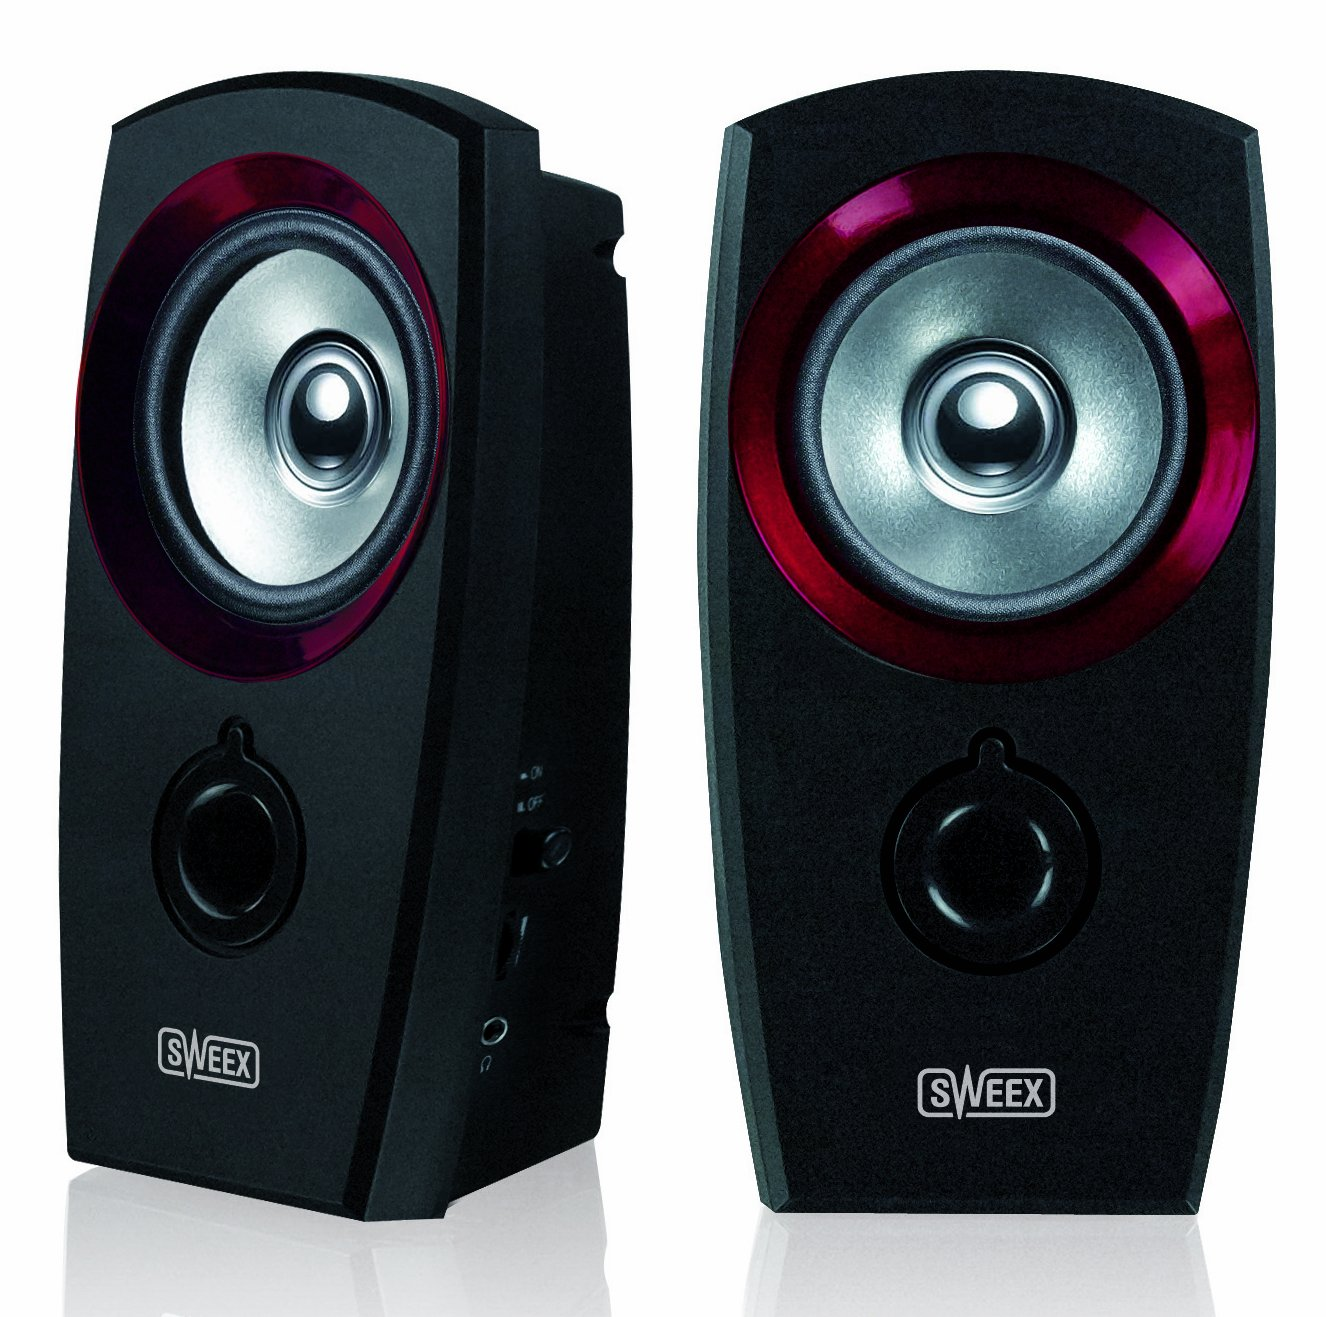 Sweex USB 2.0 Speaker Set - Black/Red